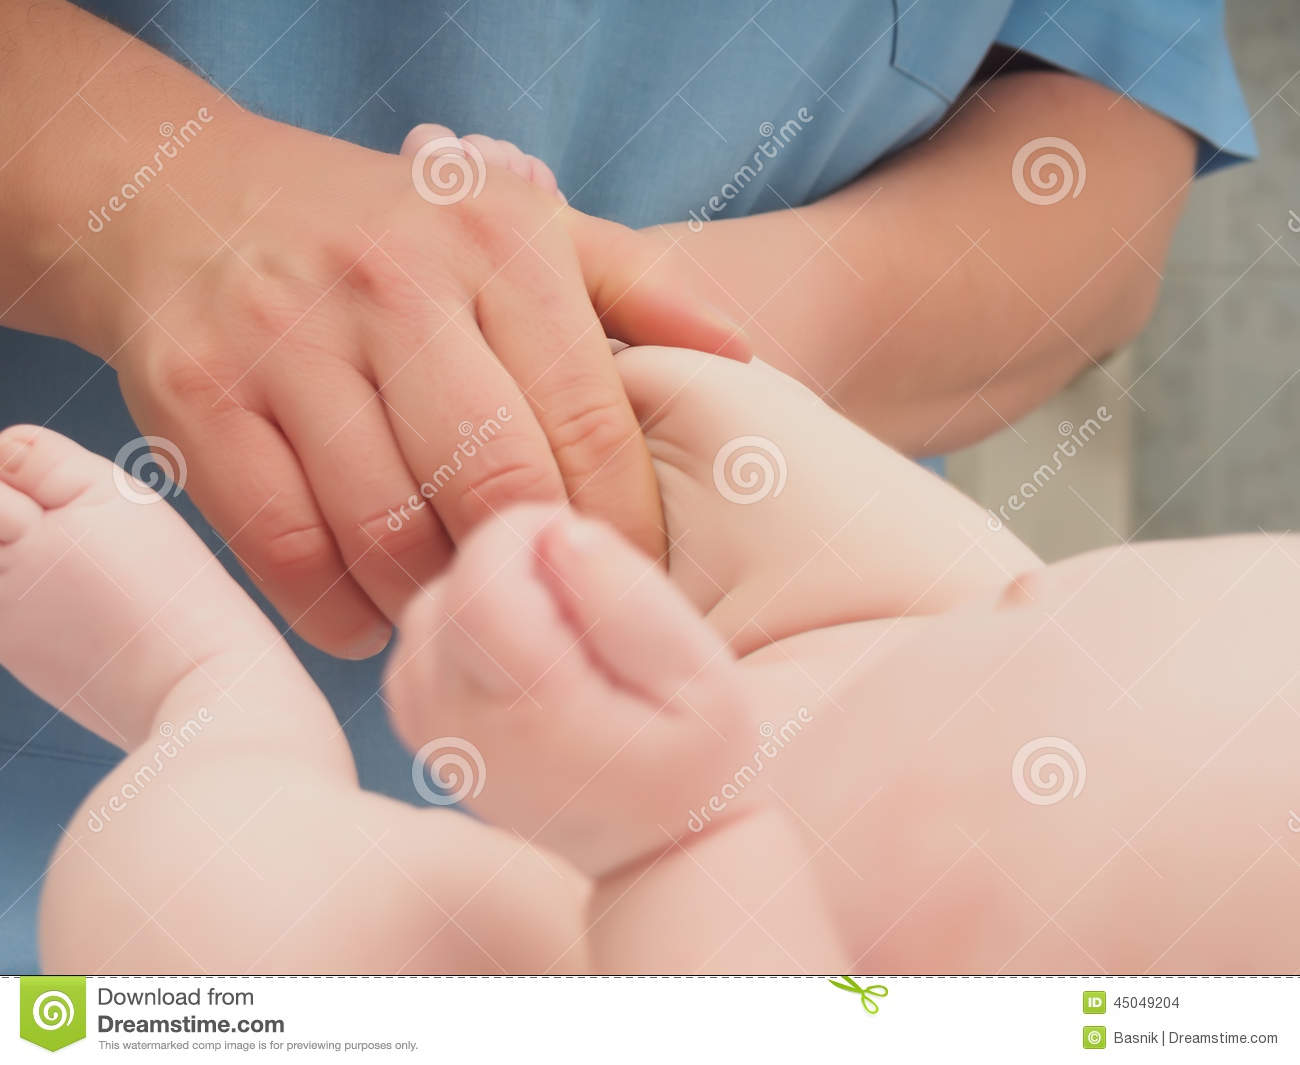 Doctor massage small caucasian baby